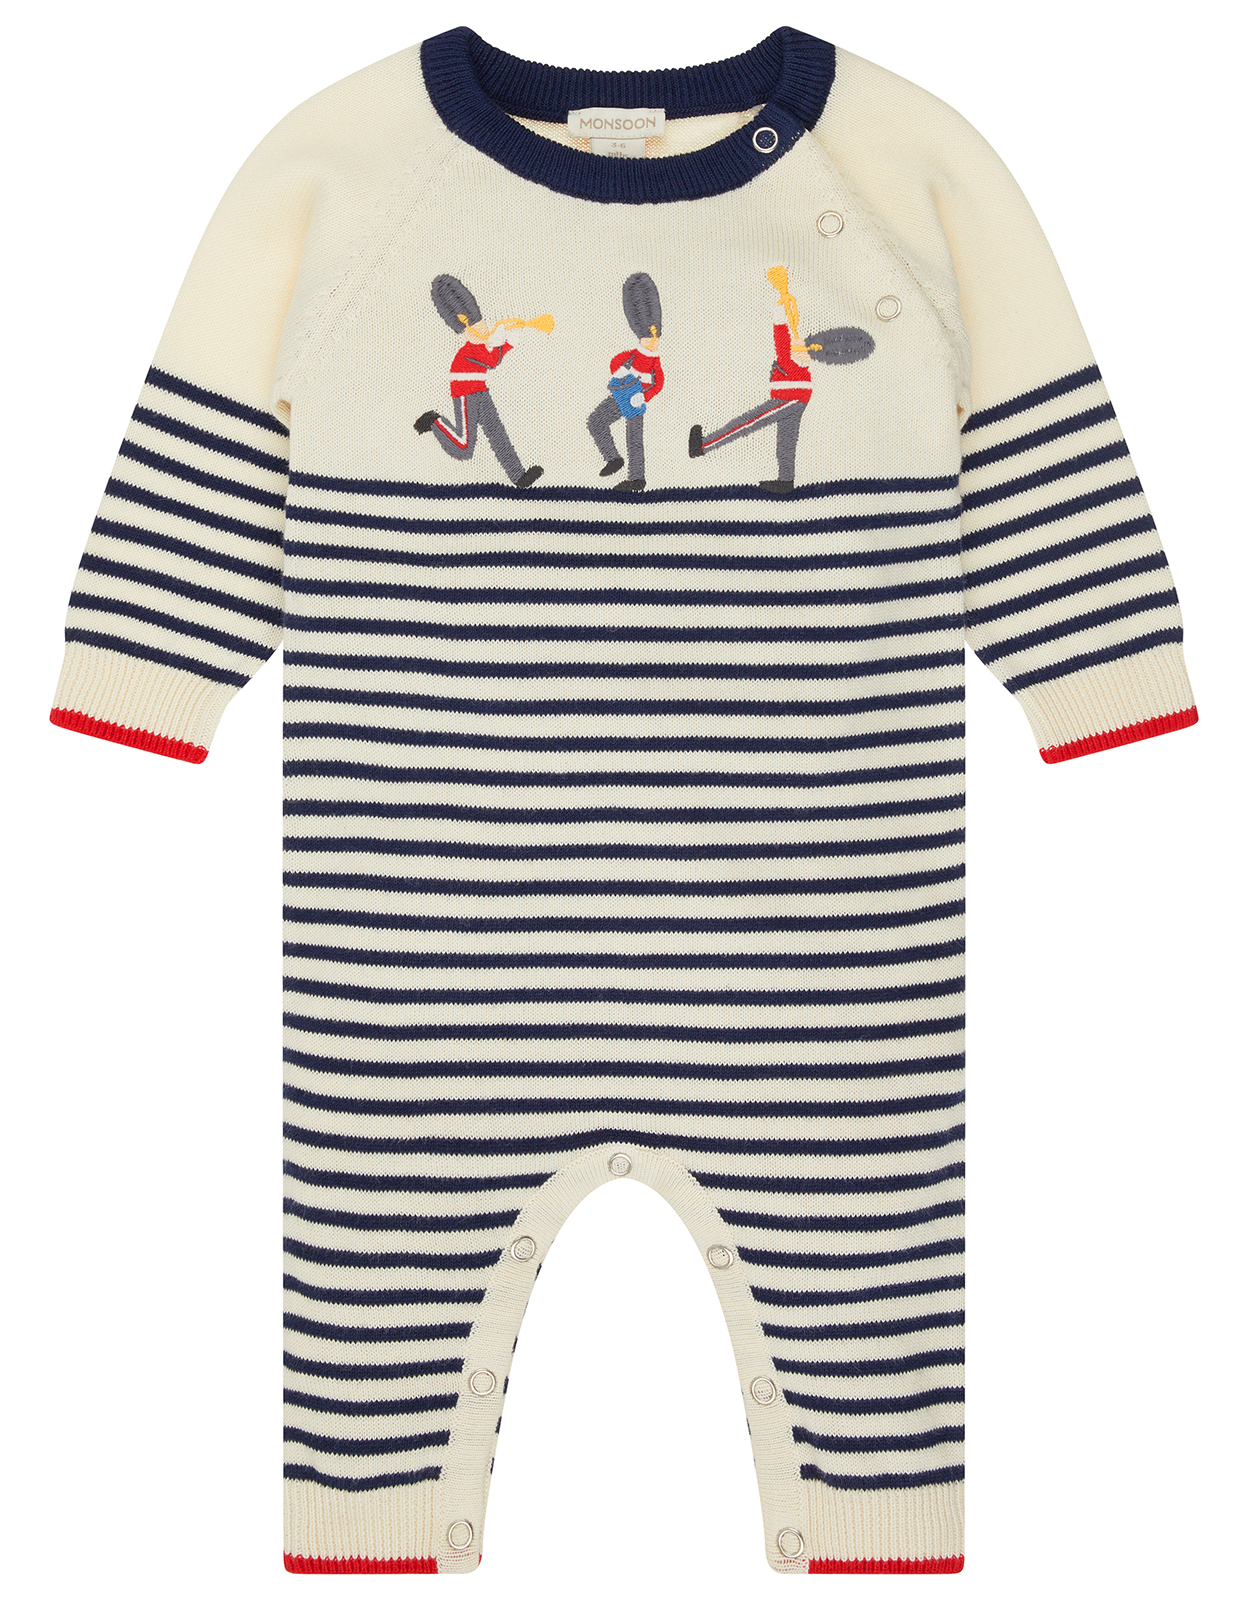 Monsoon Newborn Baby Lucas Guard Knitted Sleepsuit